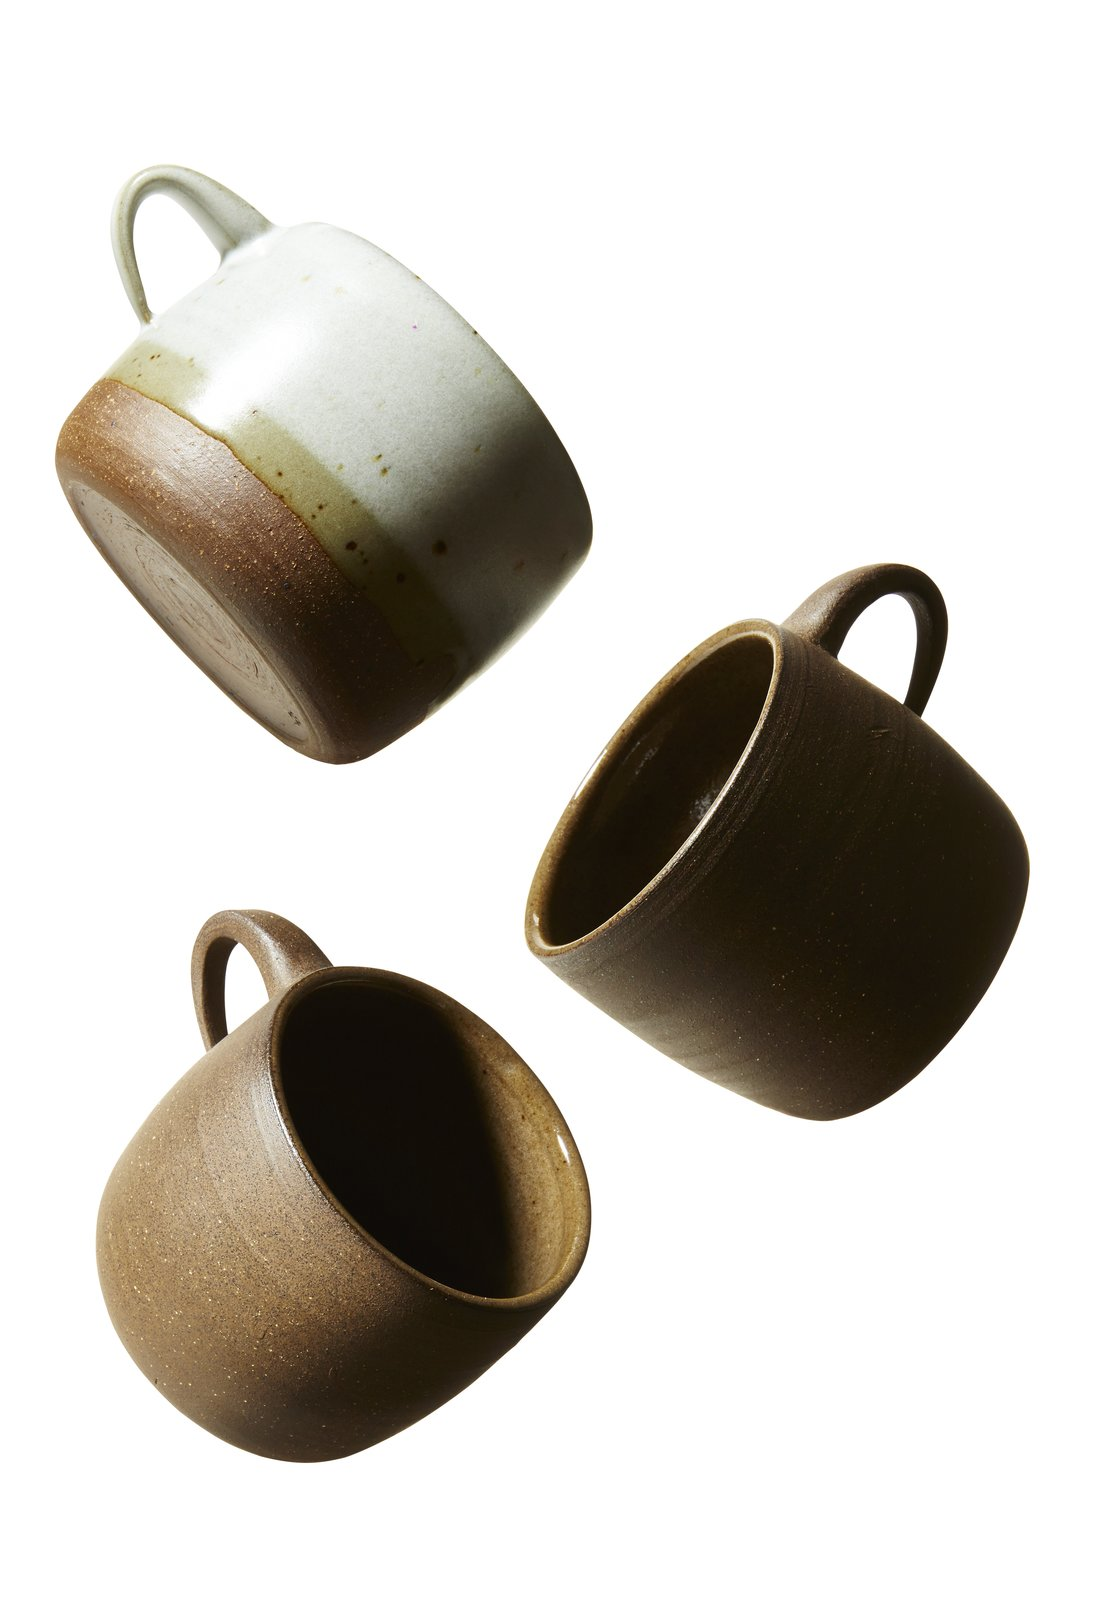 """Stoneware Mugs (2016) CGCERAMICS Christie Goodfellow, Owner """"The mugs are produced in  a 169-square-foot studio in my backyard. Each one takes about 38 minutes—this includes casting, cleaning up and preparing the piece to be fired, bisque firing, glazing, and glaze firing. Typically two people are involved in the production process; I usually cast the pieces and my studio assistant cleans up the parting lines  and prepares the pieces for firing."""""""